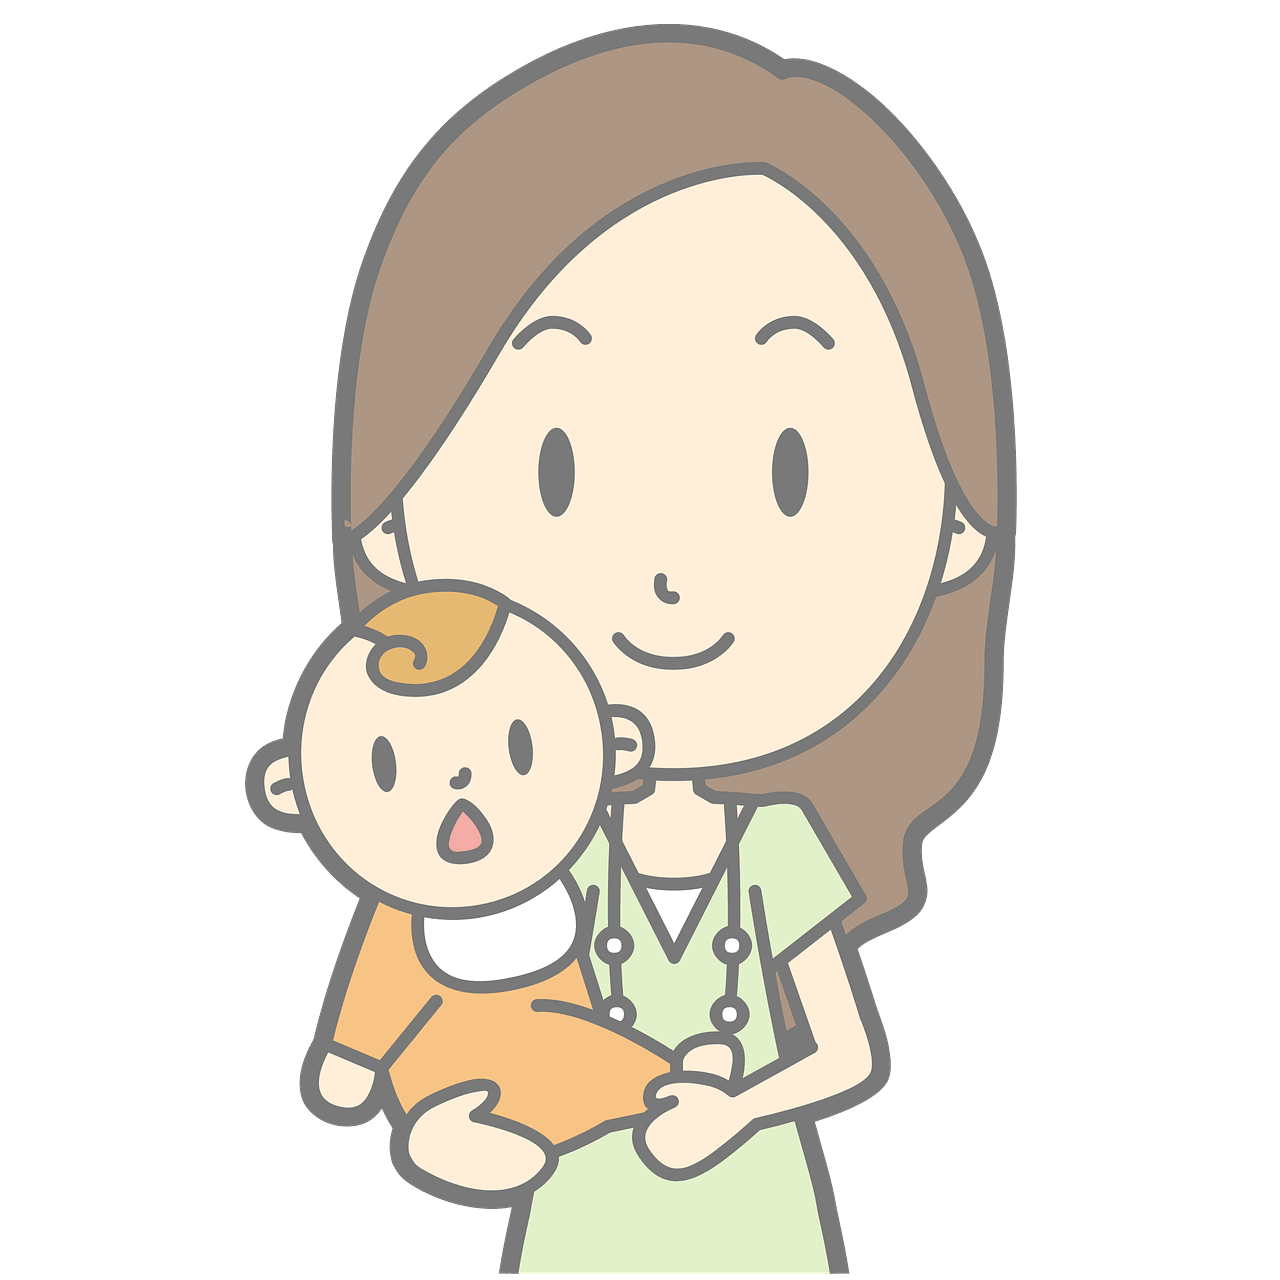 Mommy holding baby clipart. Free download..